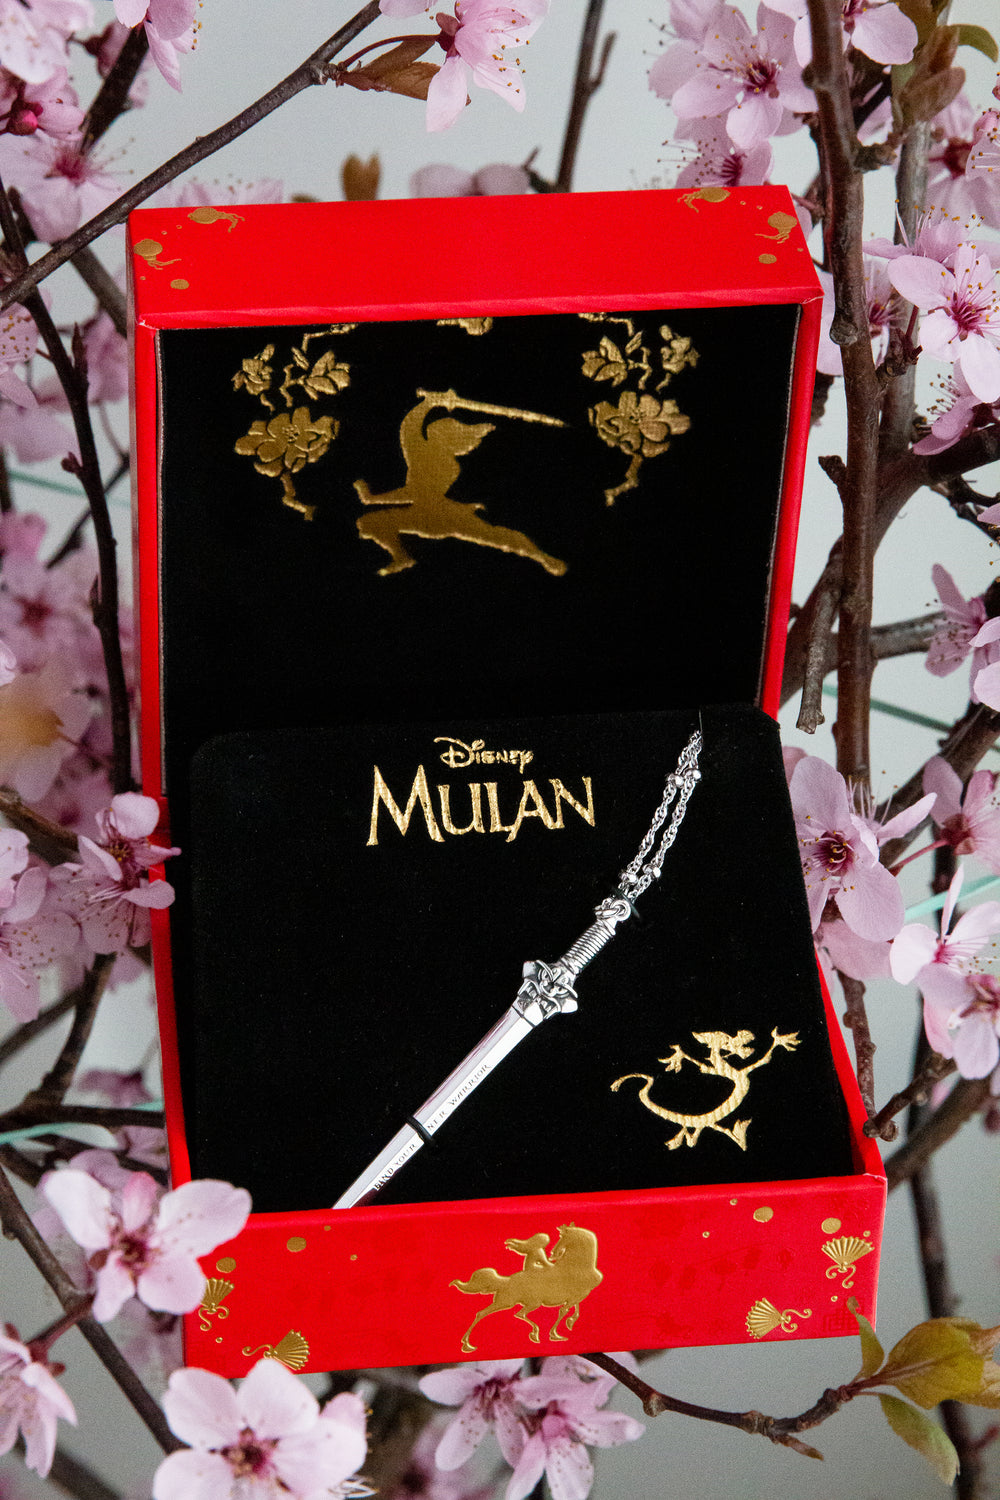 DISNEY'S MULAN Sword Necklace